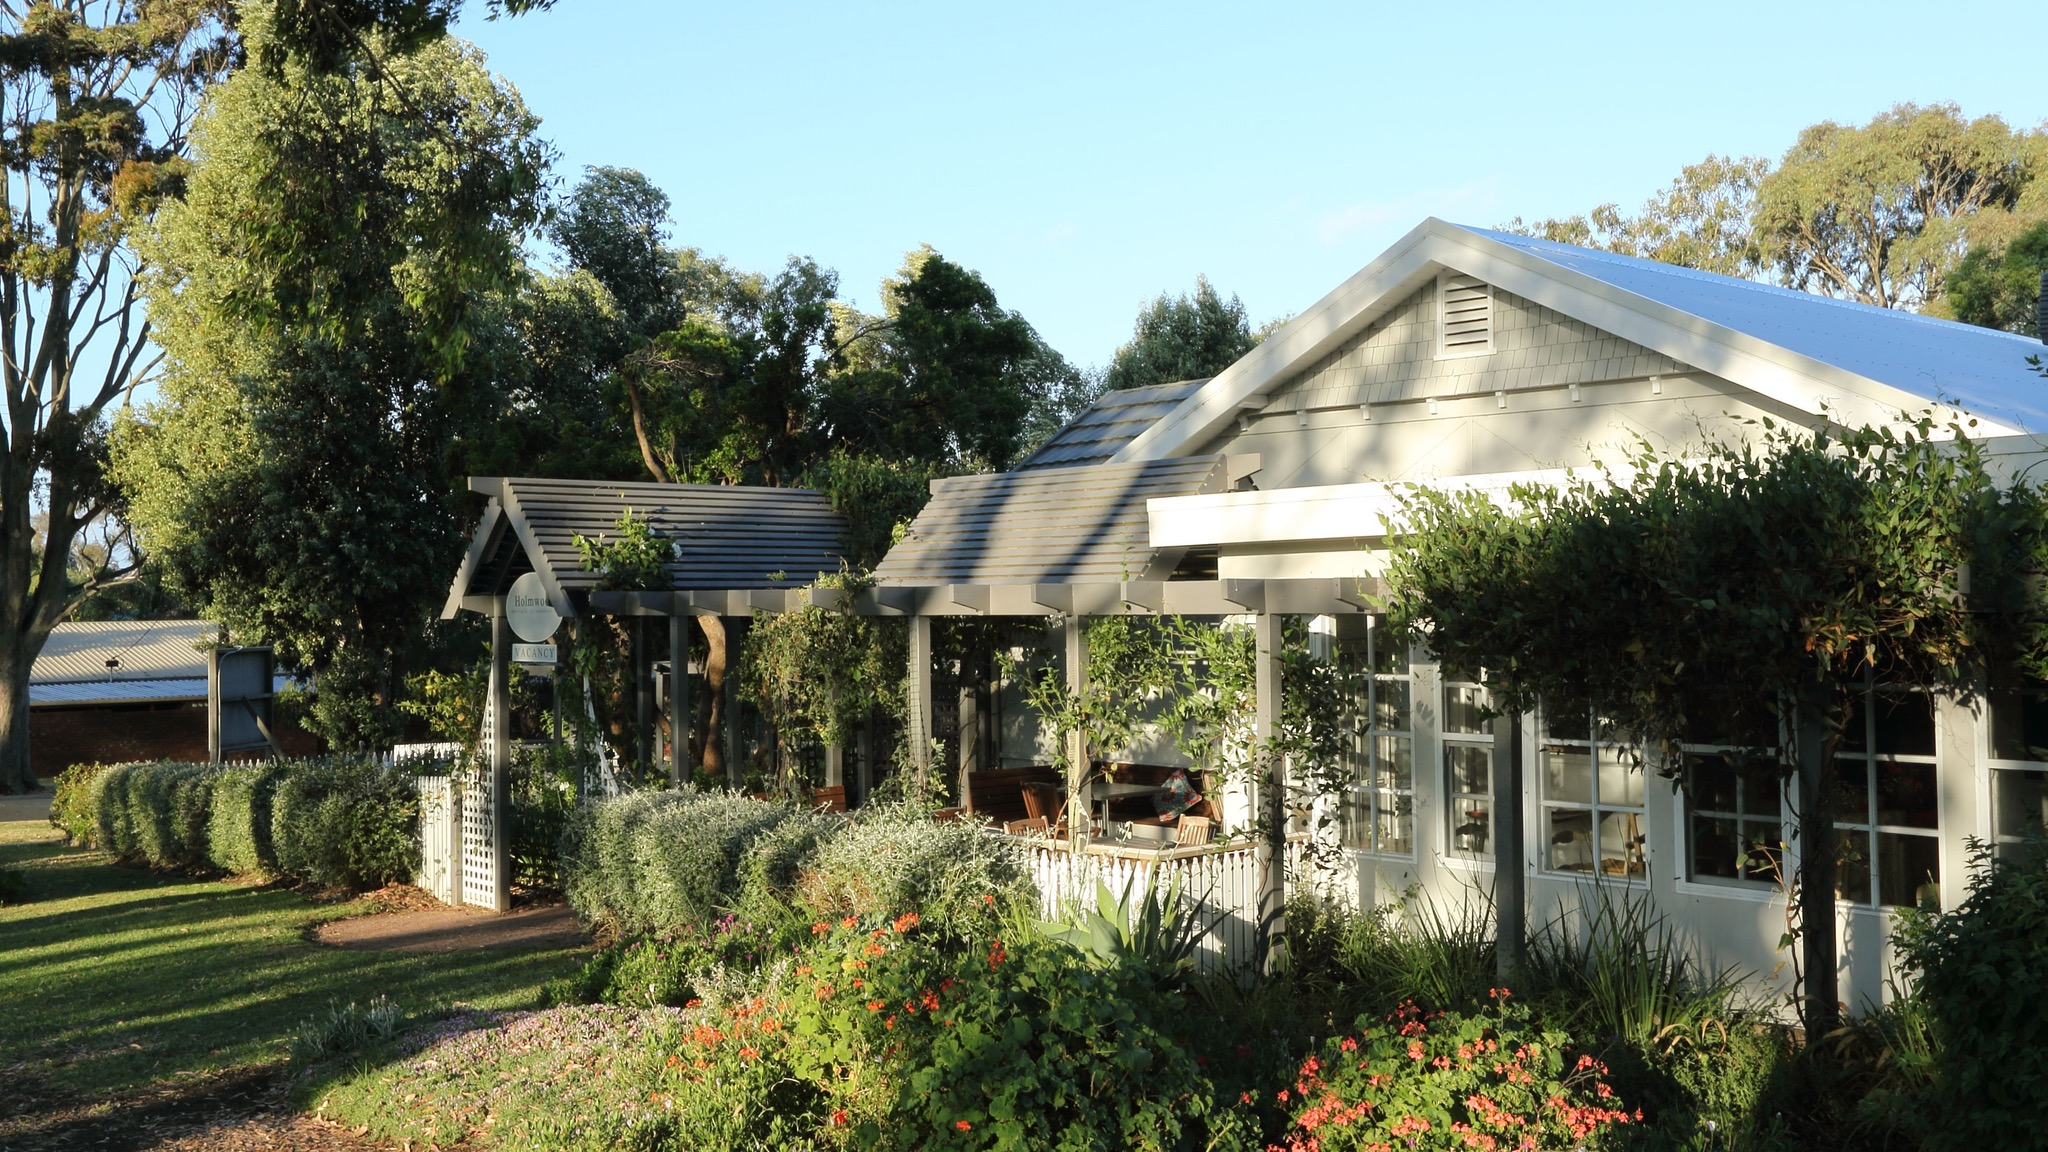 Holmwood Guesthouse surrounded by tall gum trees